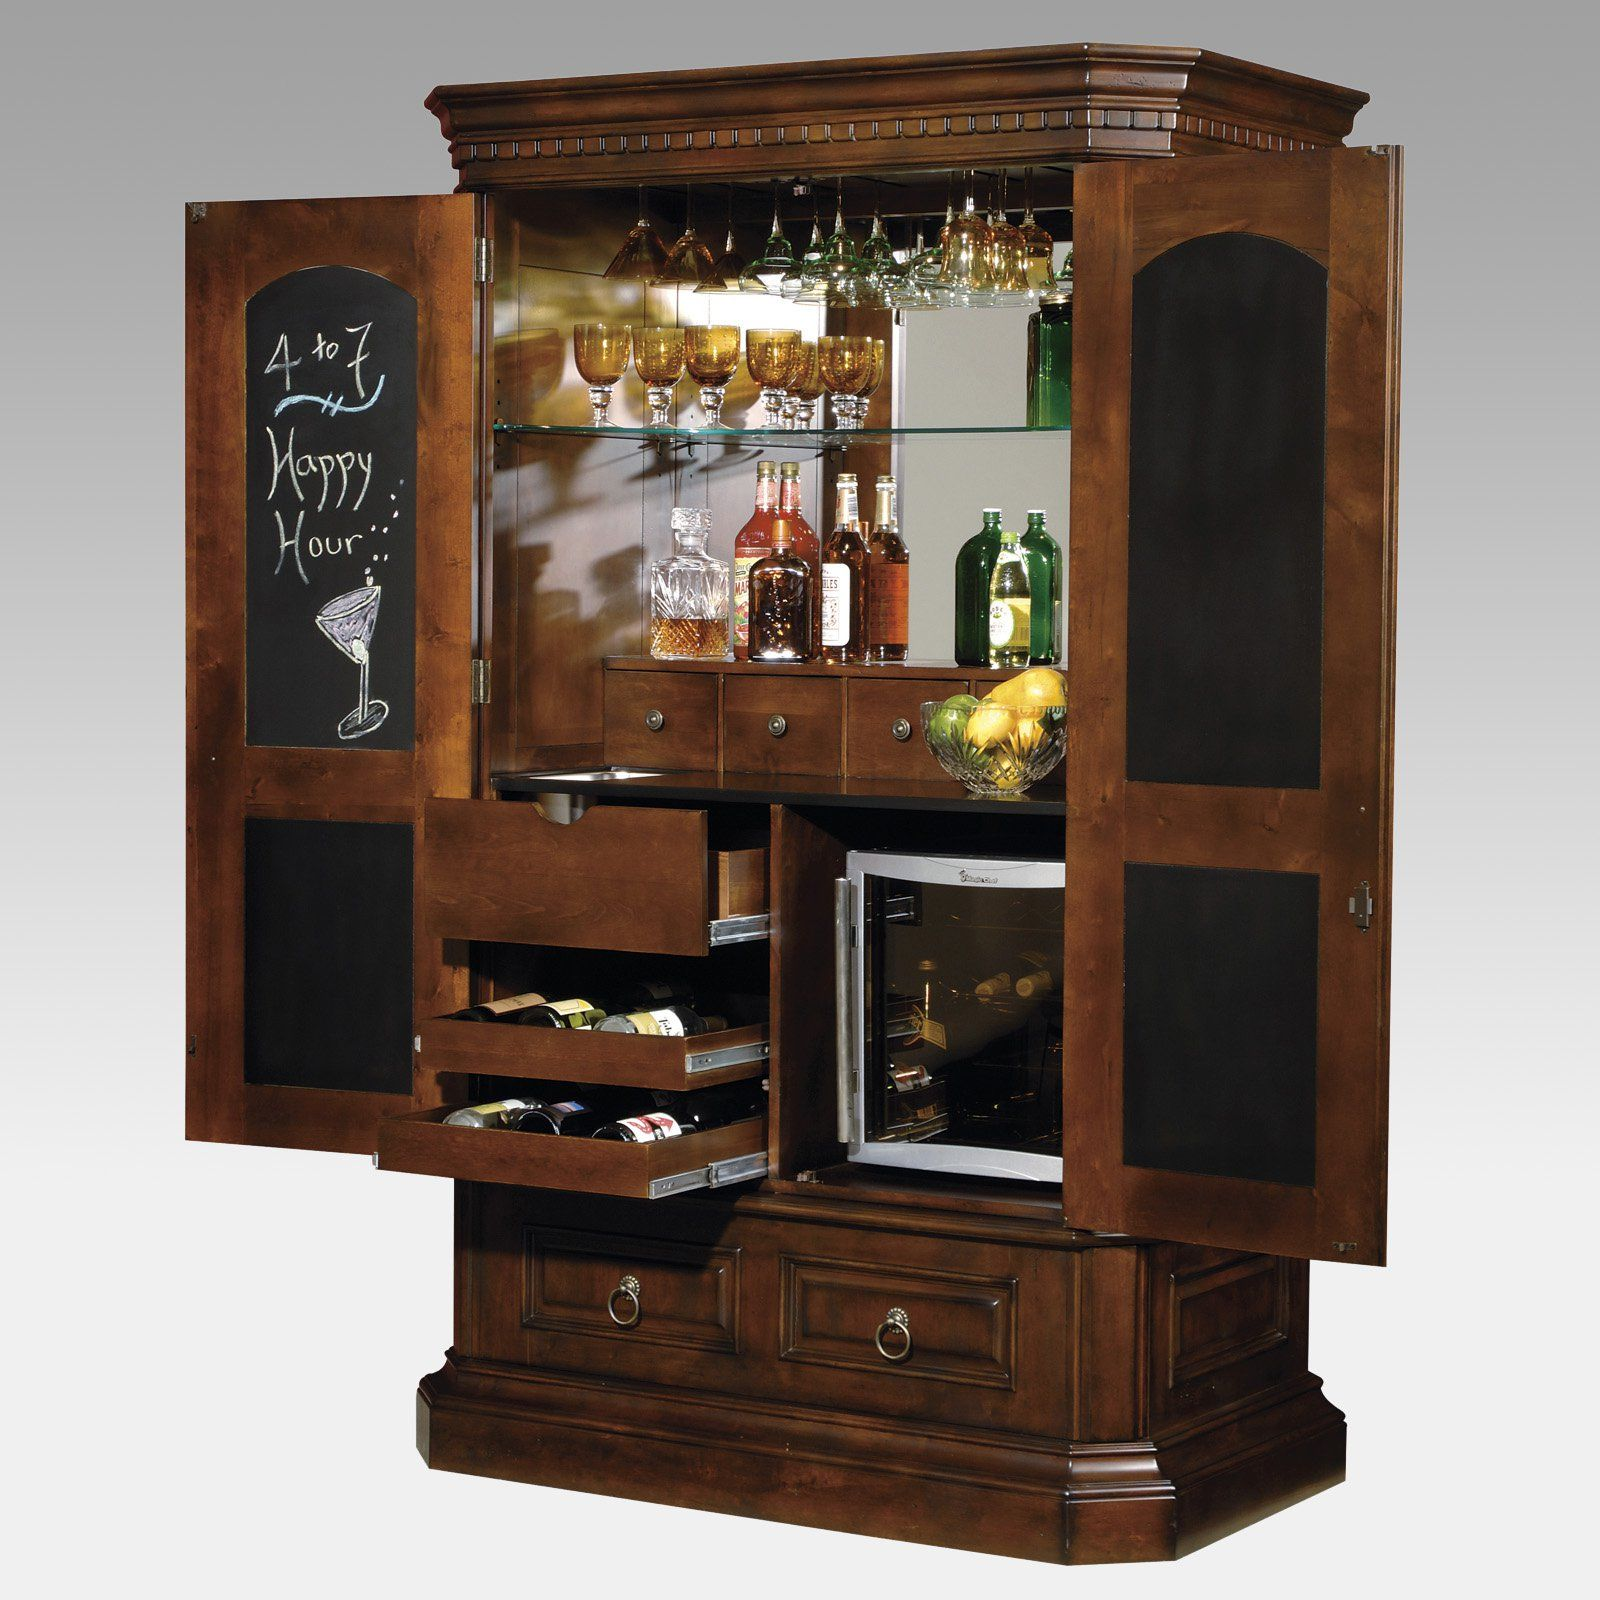 HideABar liquor is meant to look like an armoire